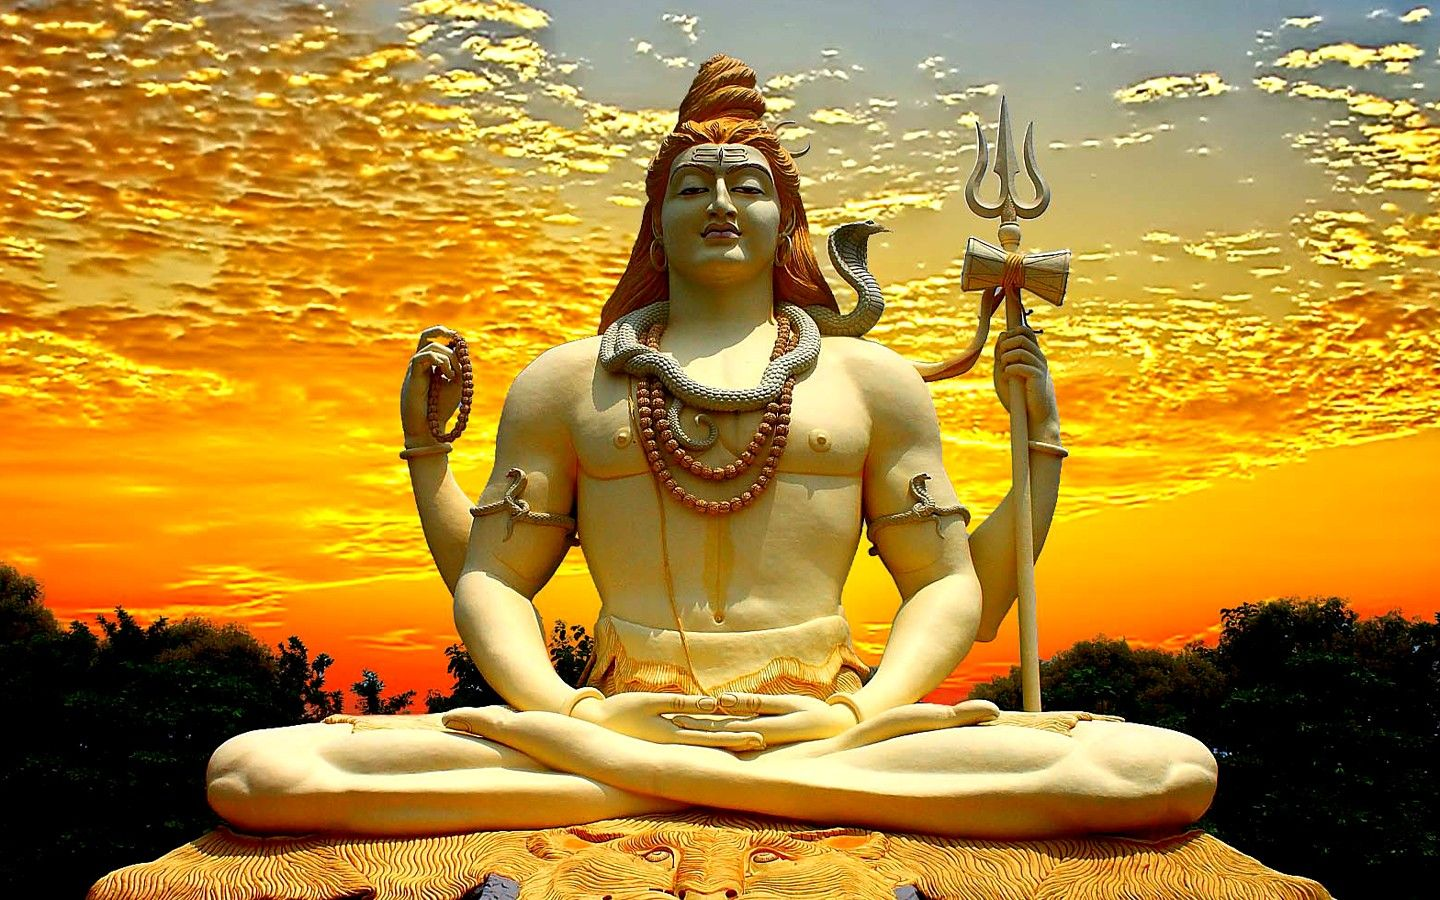 Shiva Wallpaper Hindu Wallpaper Lord Shiva Ji Wallpapers: Lord Shiva Images, Lord Shiva Photos & HD Wallpapers Free